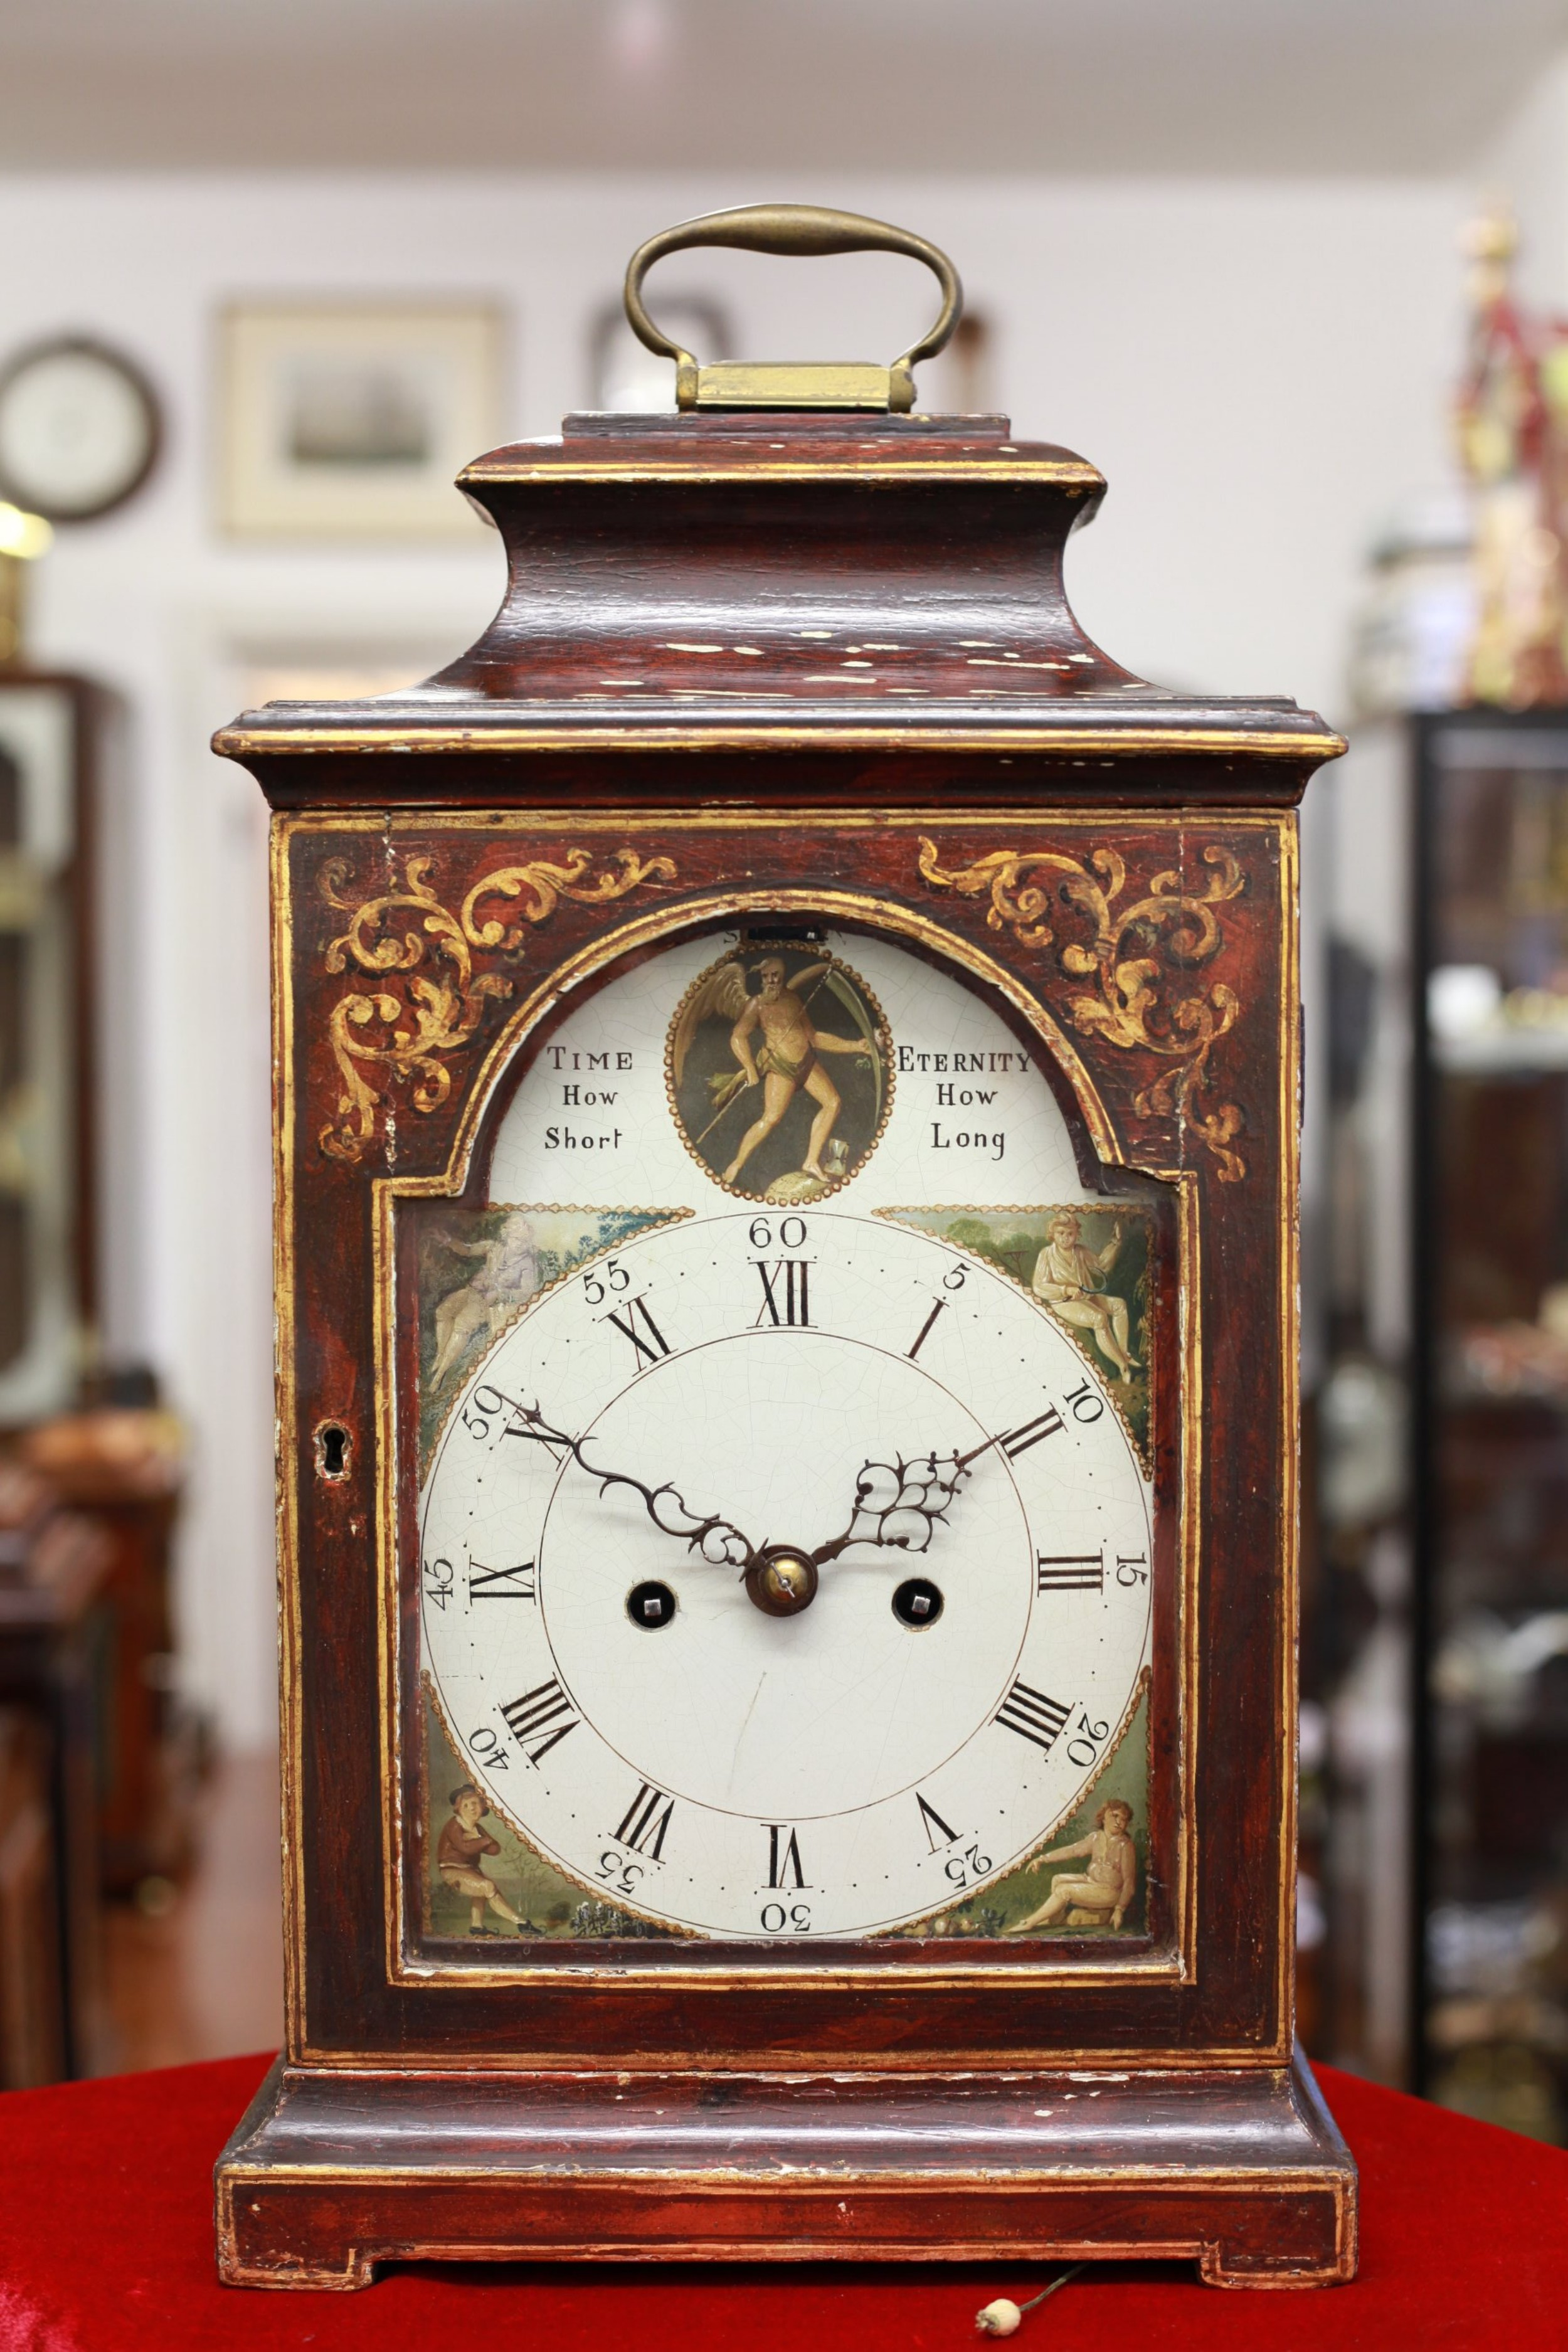 c1770 painted bracket clock with verge escapement pull repeat silence and engraved backplate